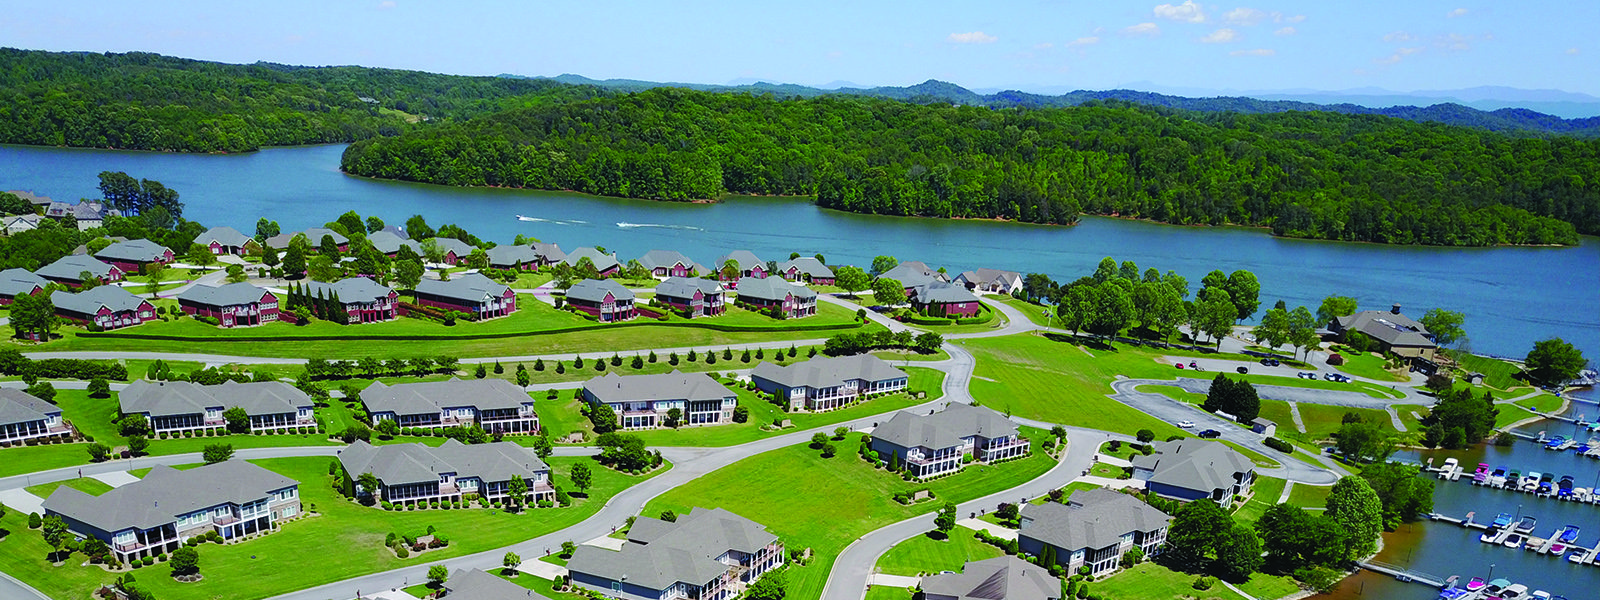 Tellico Village | Tennessee Retirement Communities | Premier Golf